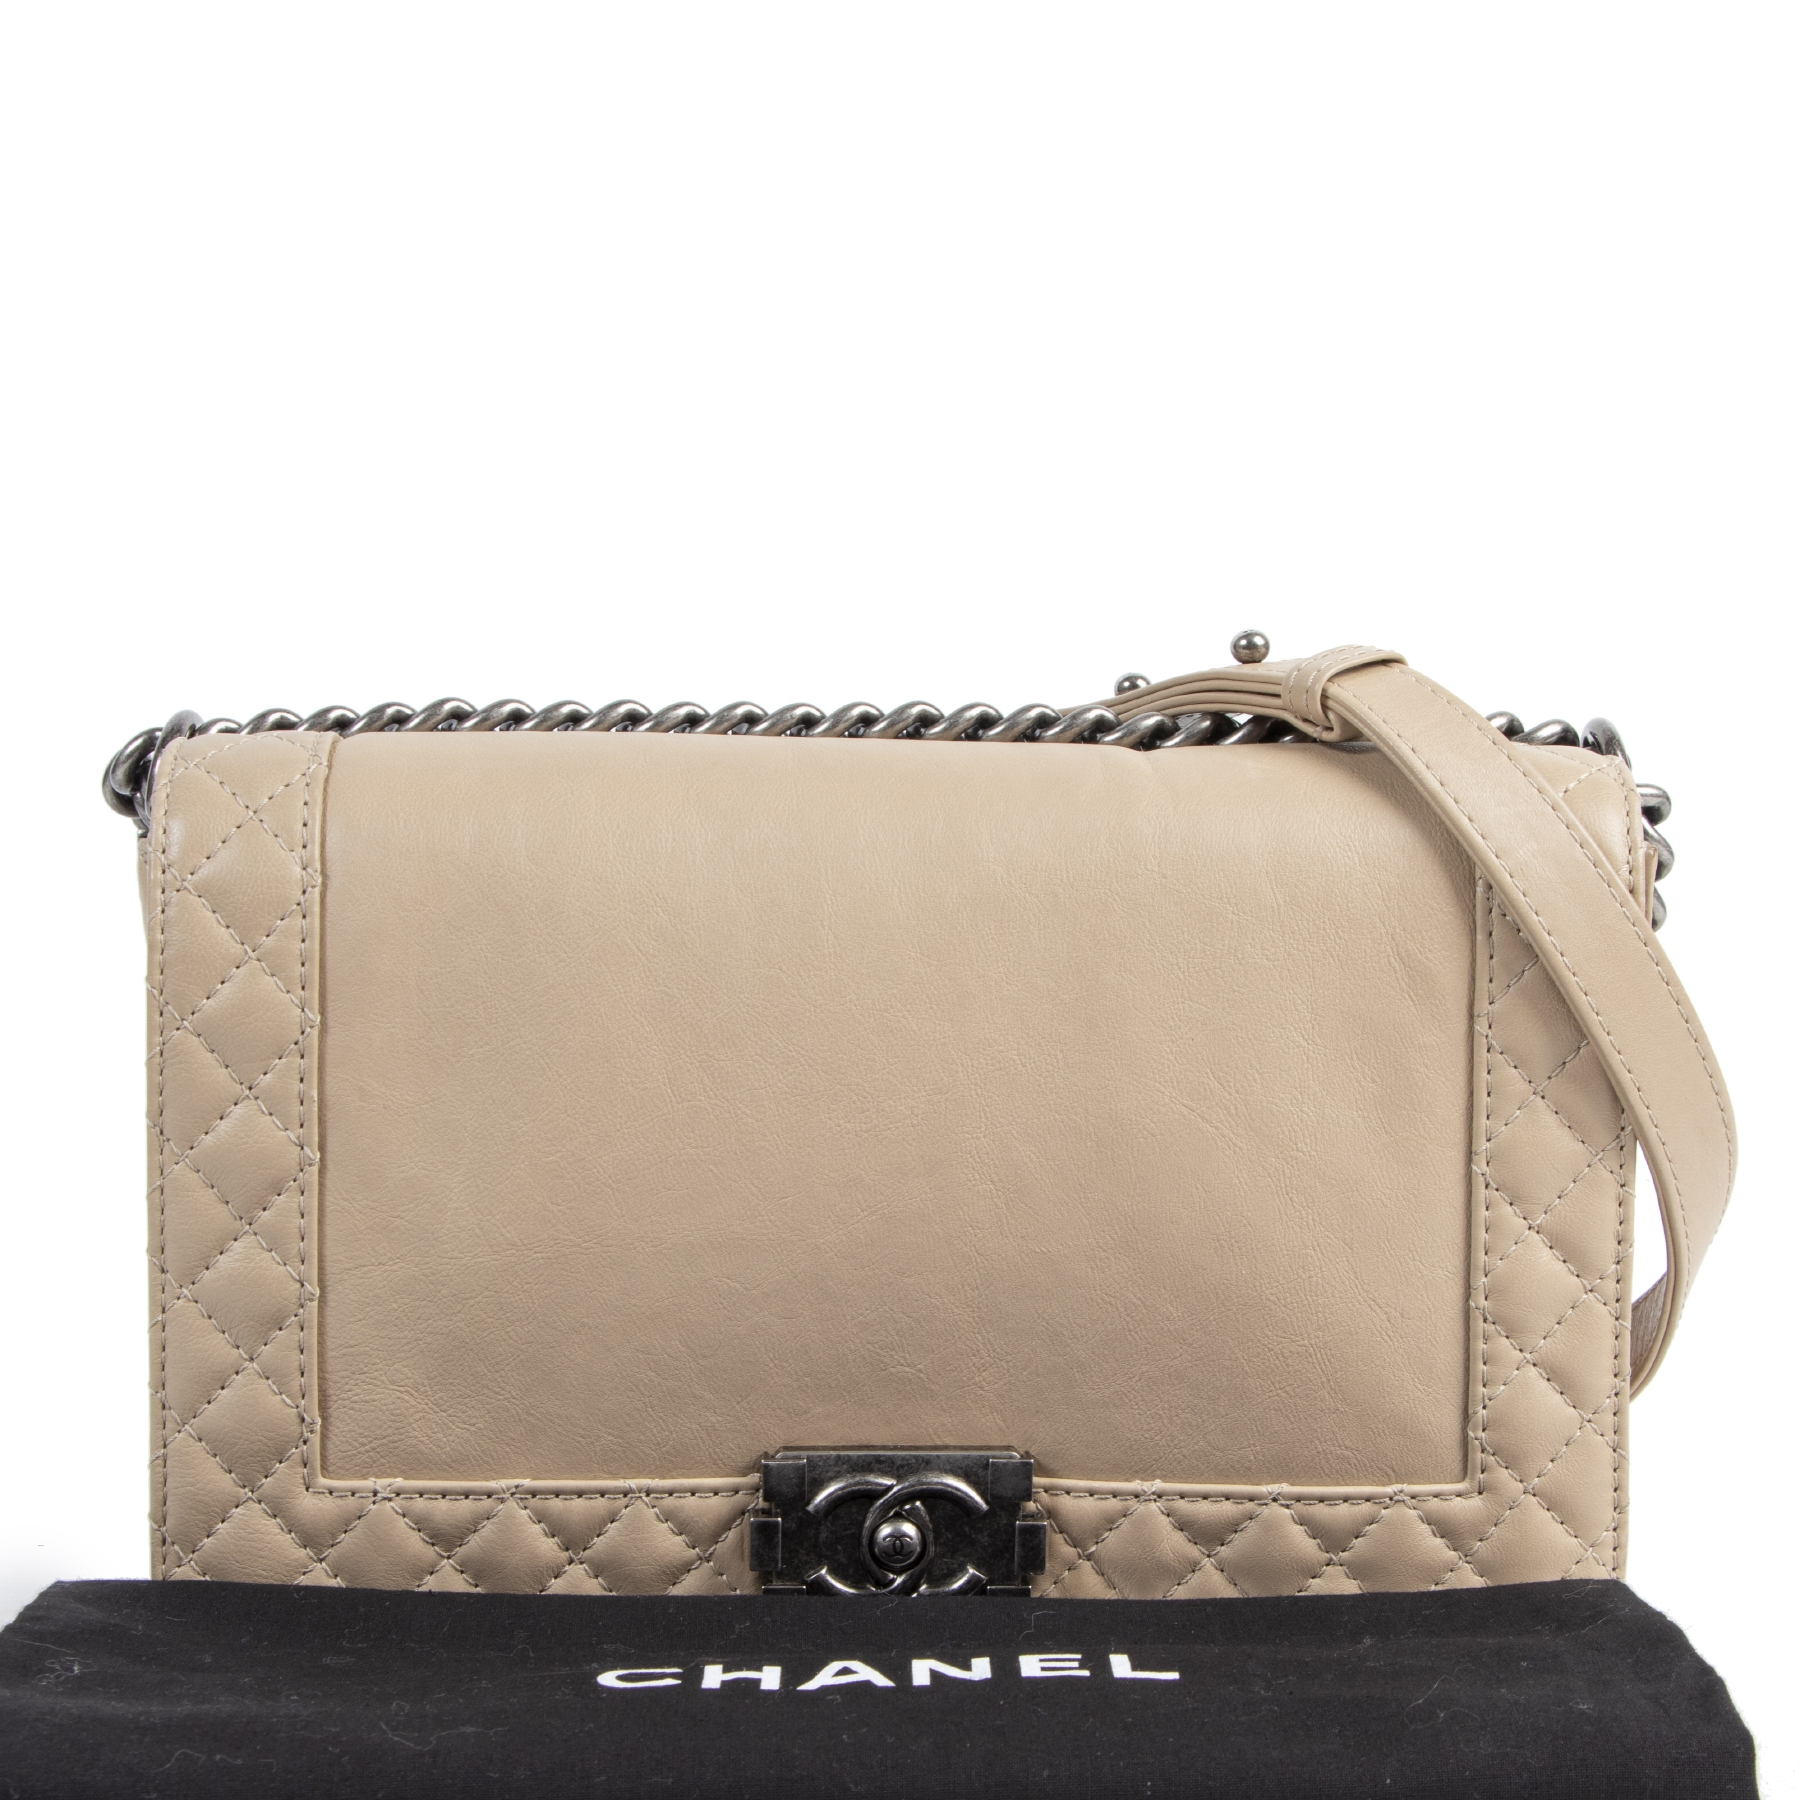 Authentic secondhand Chanel Beige New Medium Boy Reverso Calfskin Flap Bag designer bags fashion luxury vintage webshop safe secure online shopping designer high end brands